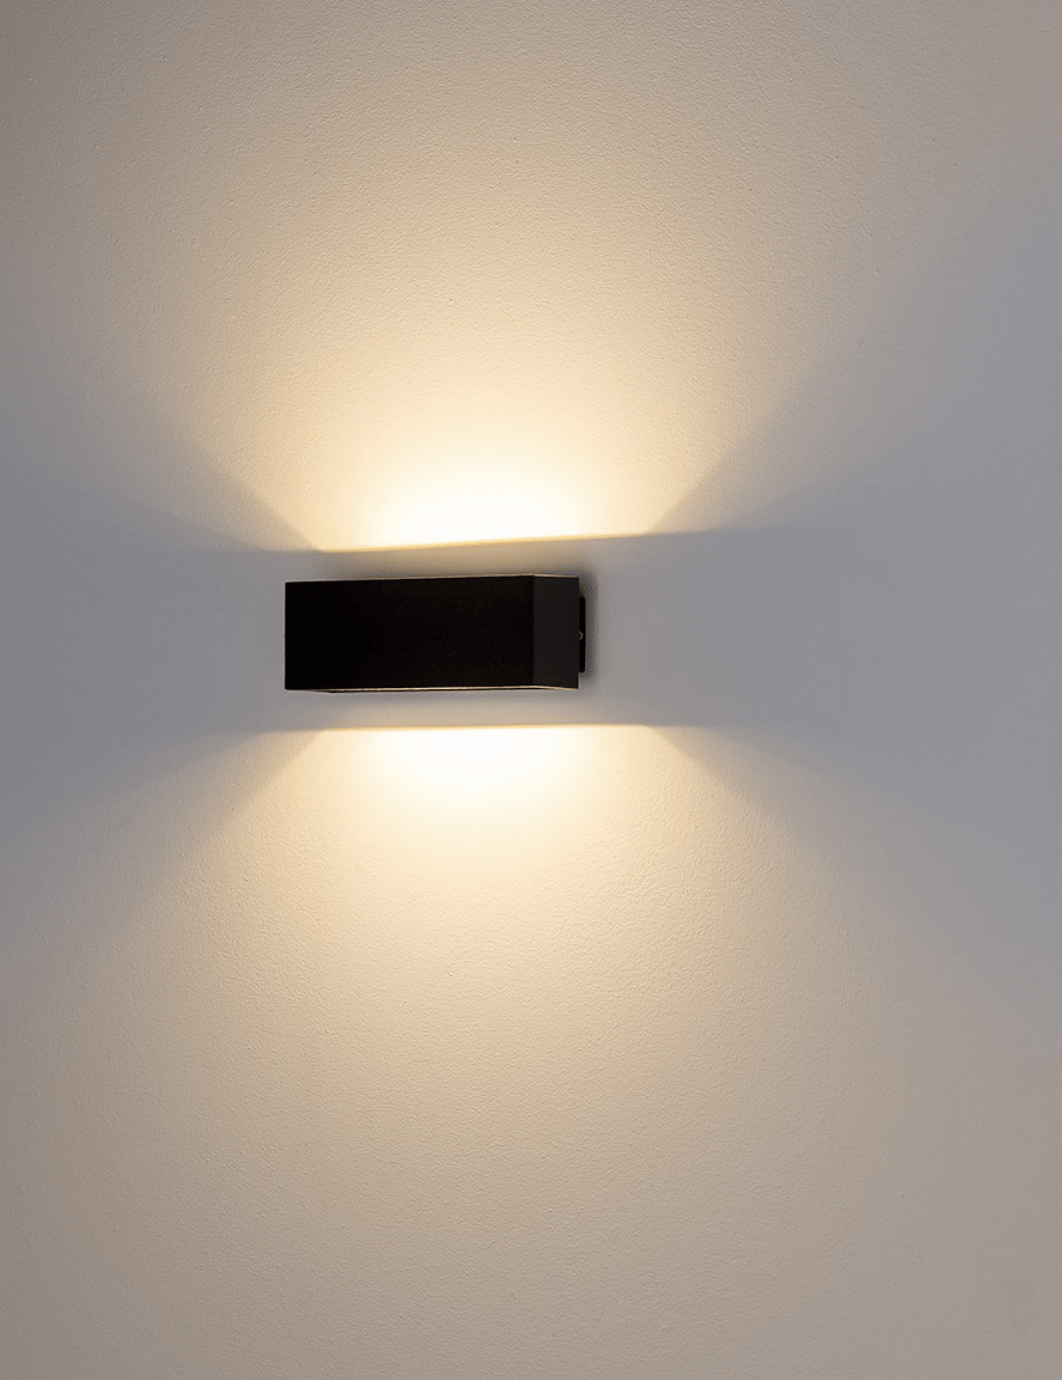 Exterior Wall Light BLOKK - Up / Down Wall Lighting Stores